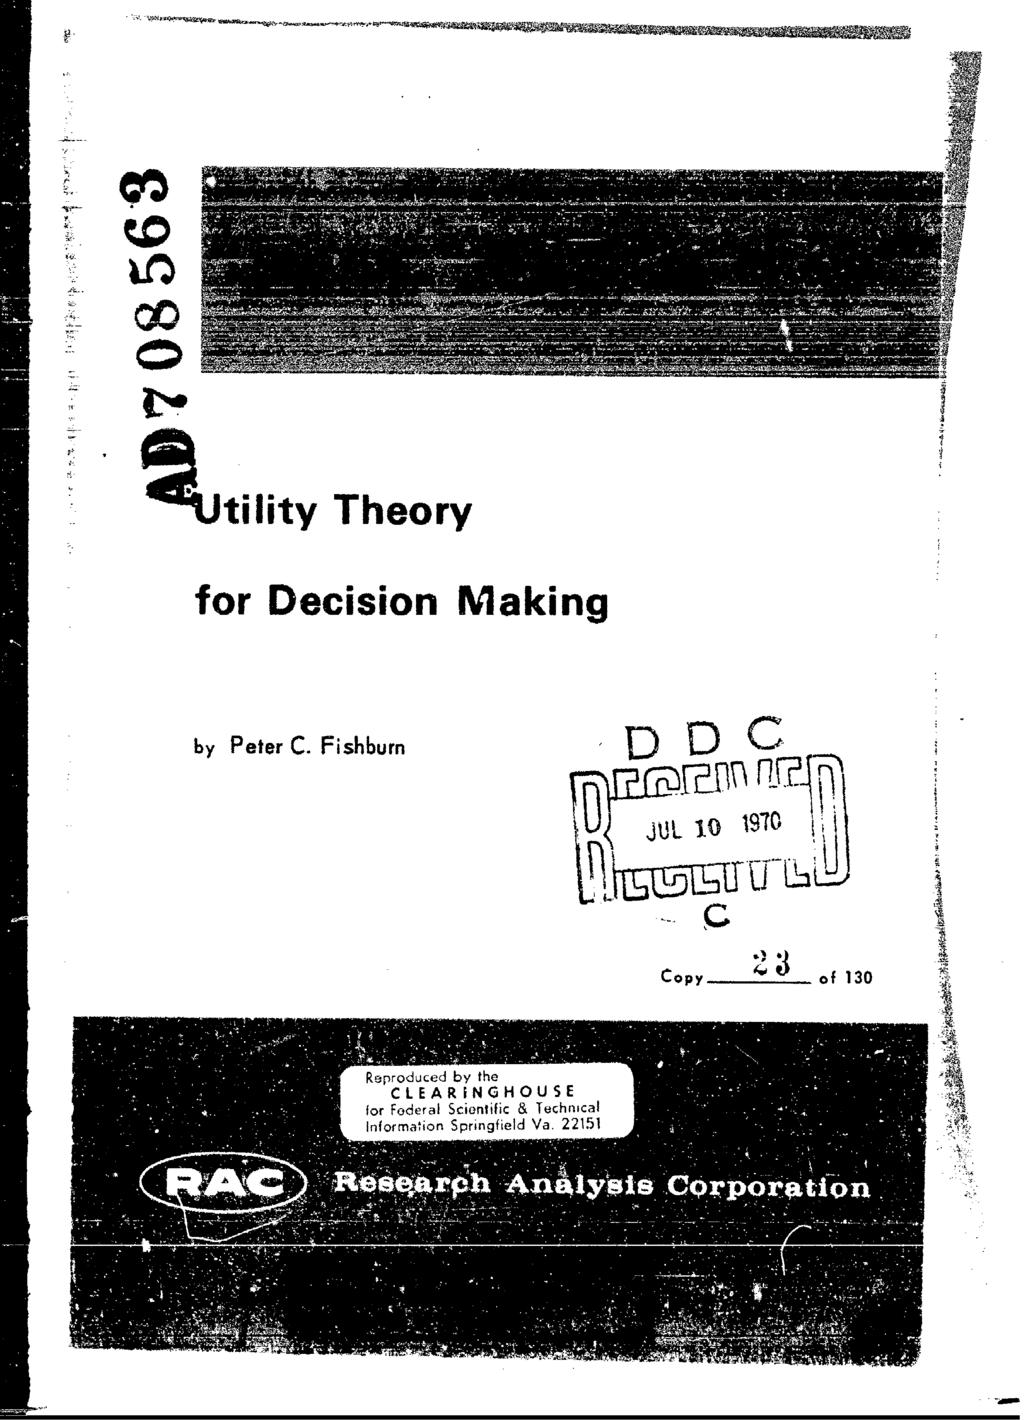 kutility Theory for Decision Making by